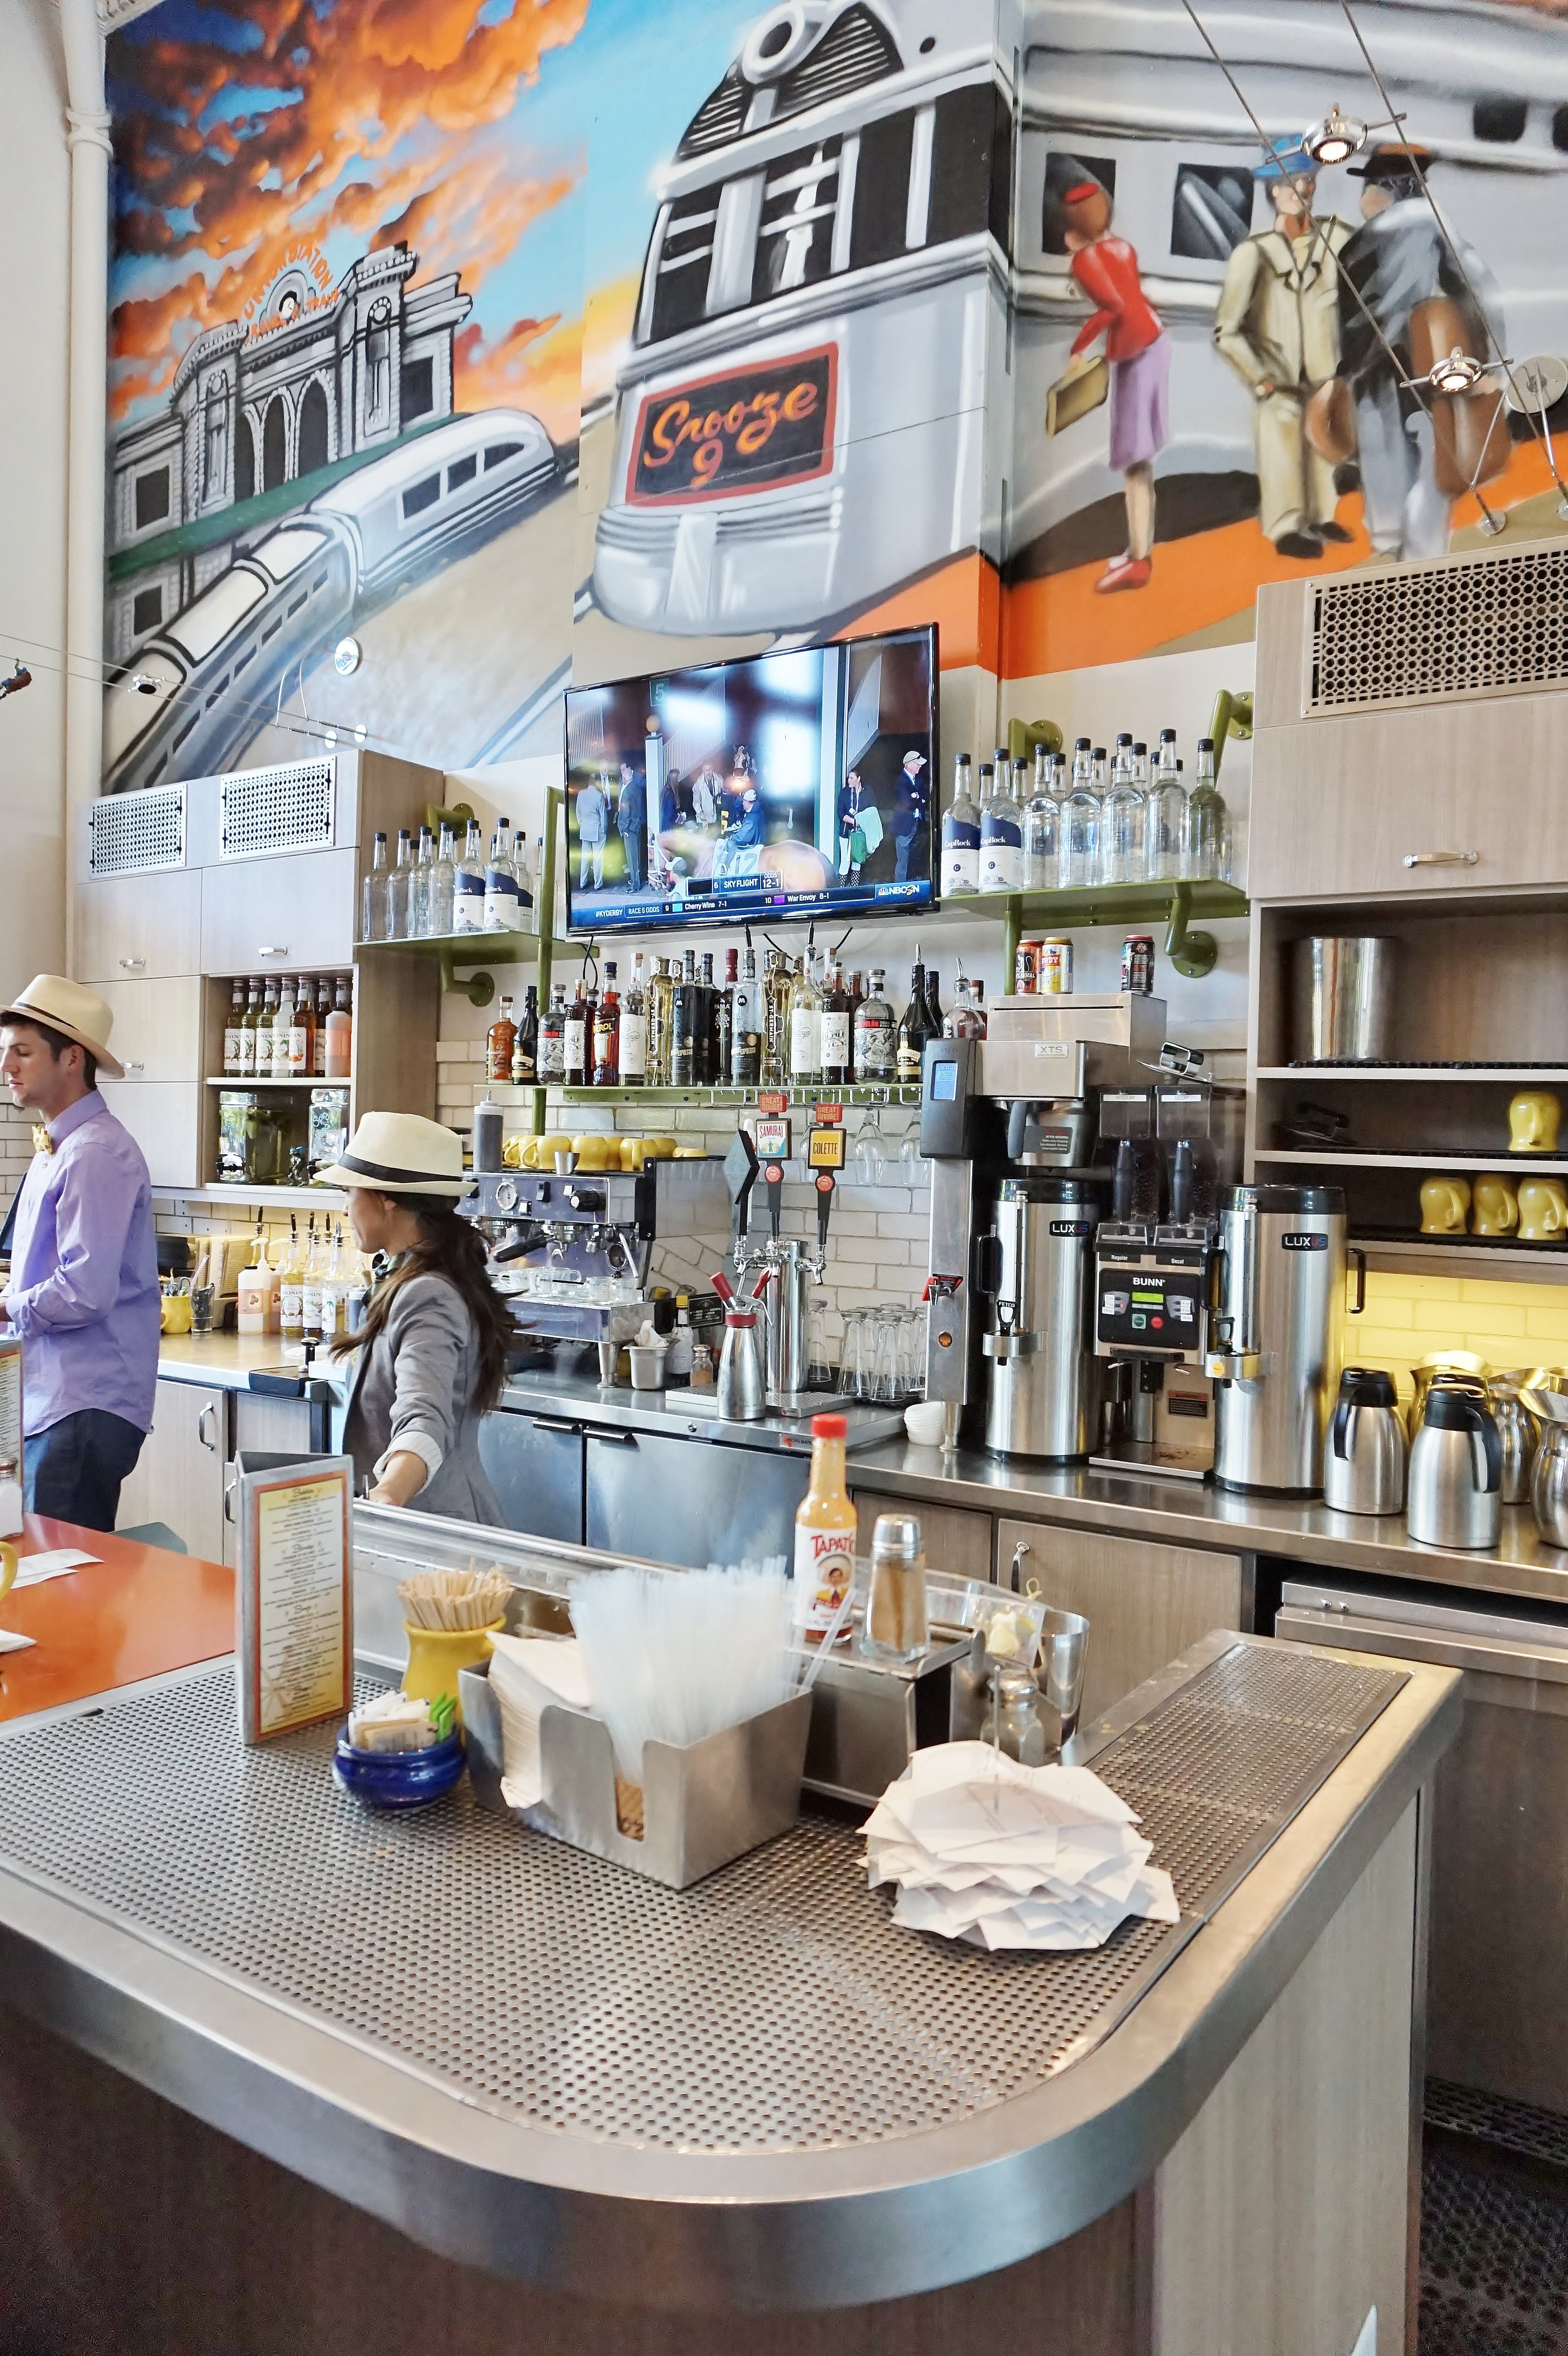 Snooze restaurant | The Crawford Hotel at Union Station | Denver